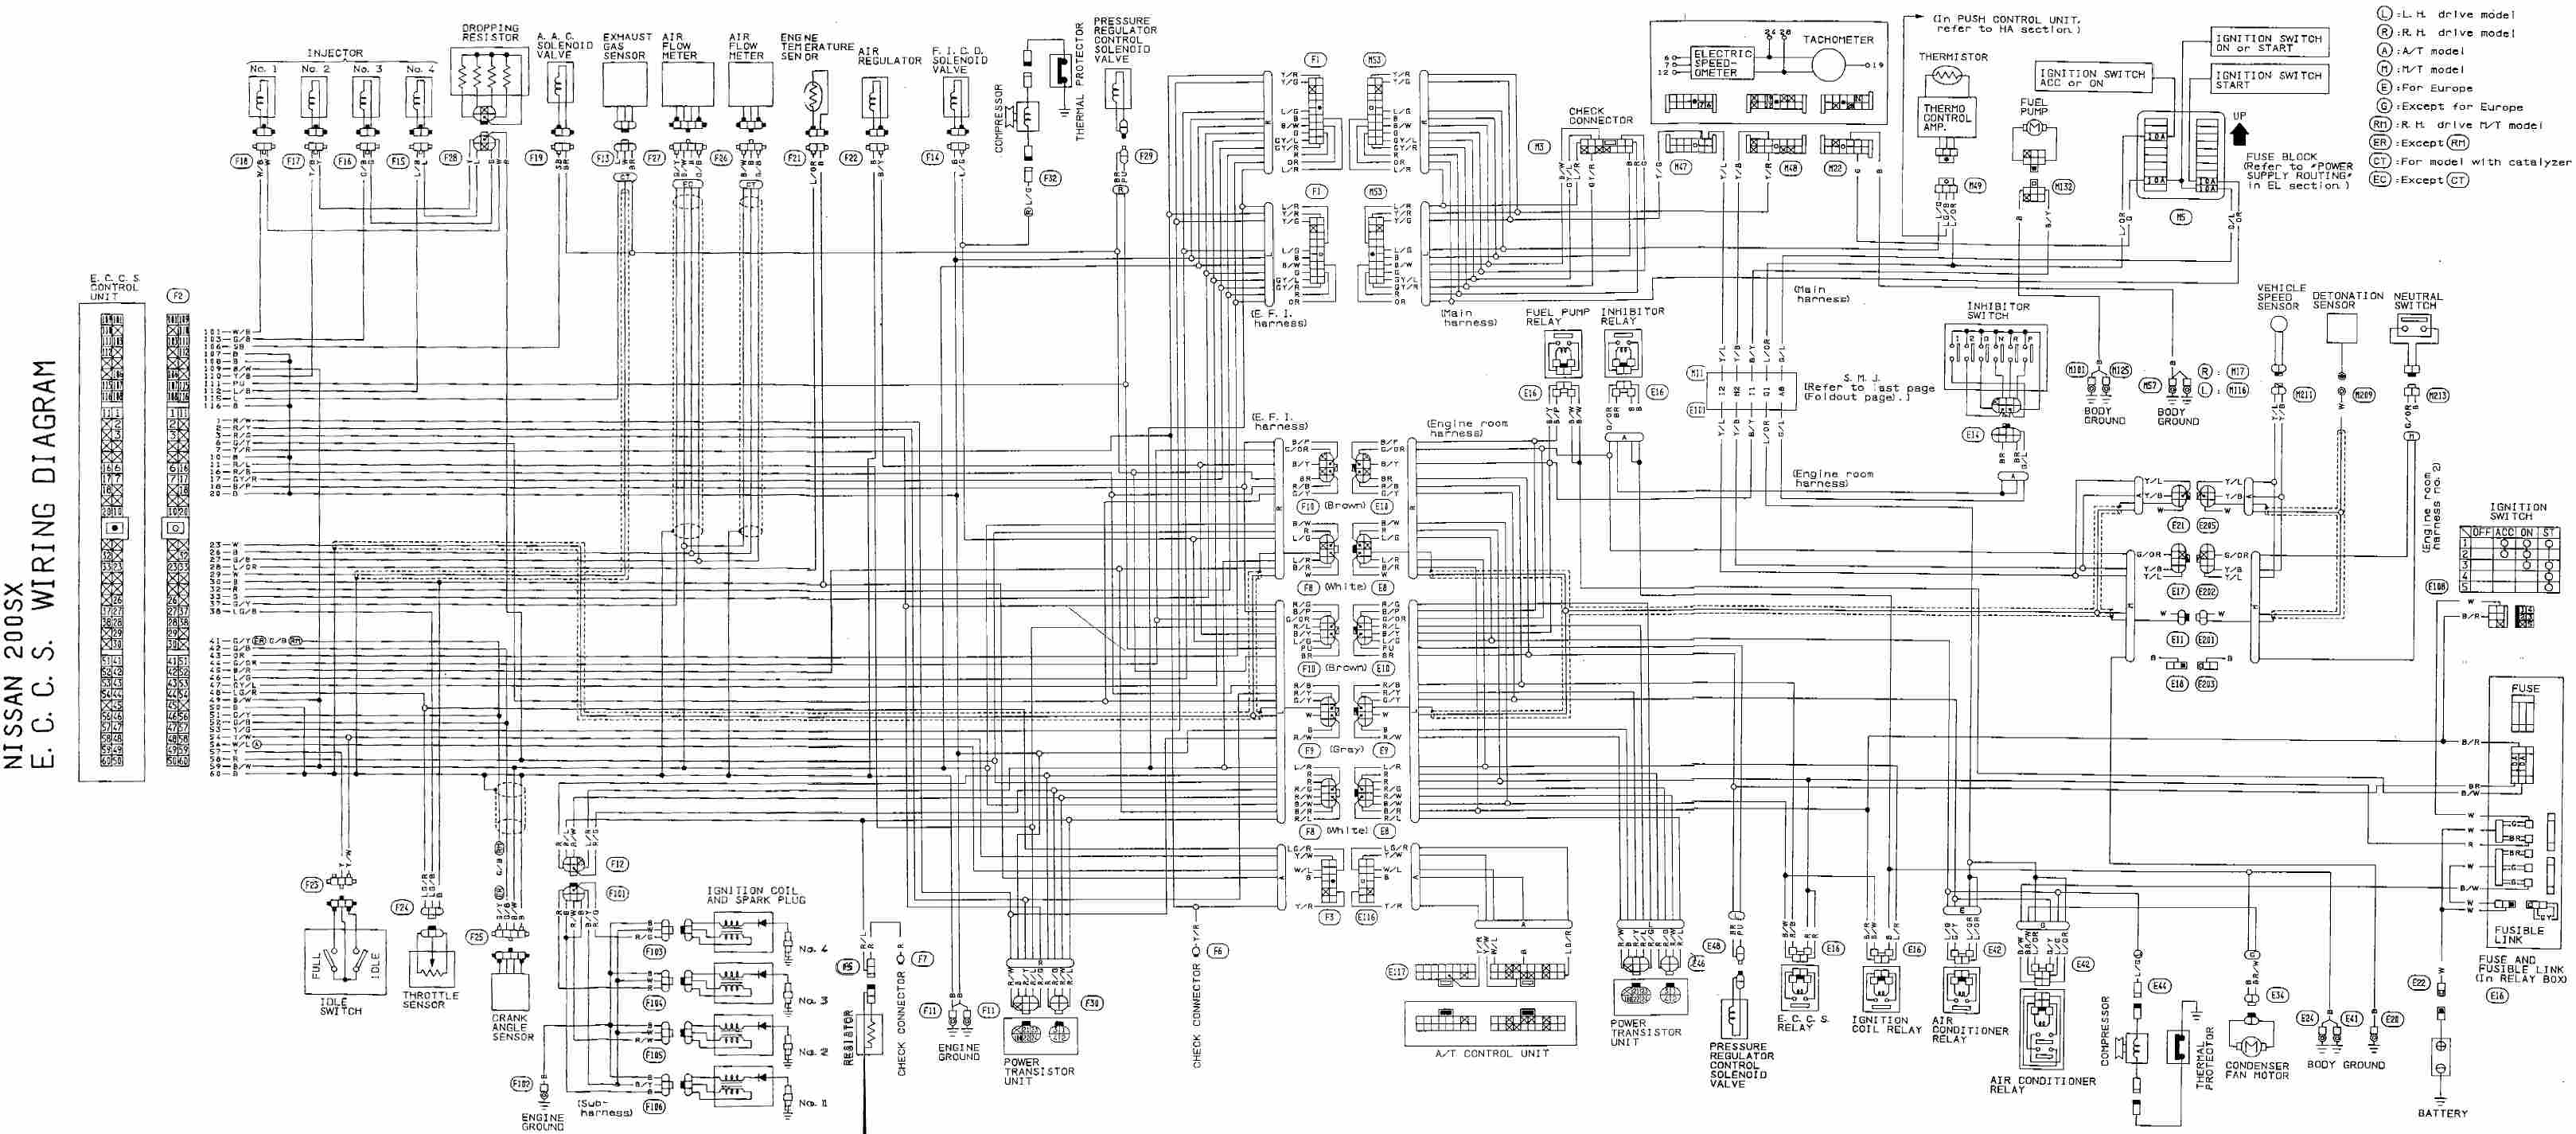 complete eccs wiring diagram of nissan 200x?t\=1508500919 300zx wiring diagram 300zx engine wiring diagram \u2022 wiring diagrams nissan 240sx wiring diagram at honlapkeszites.co